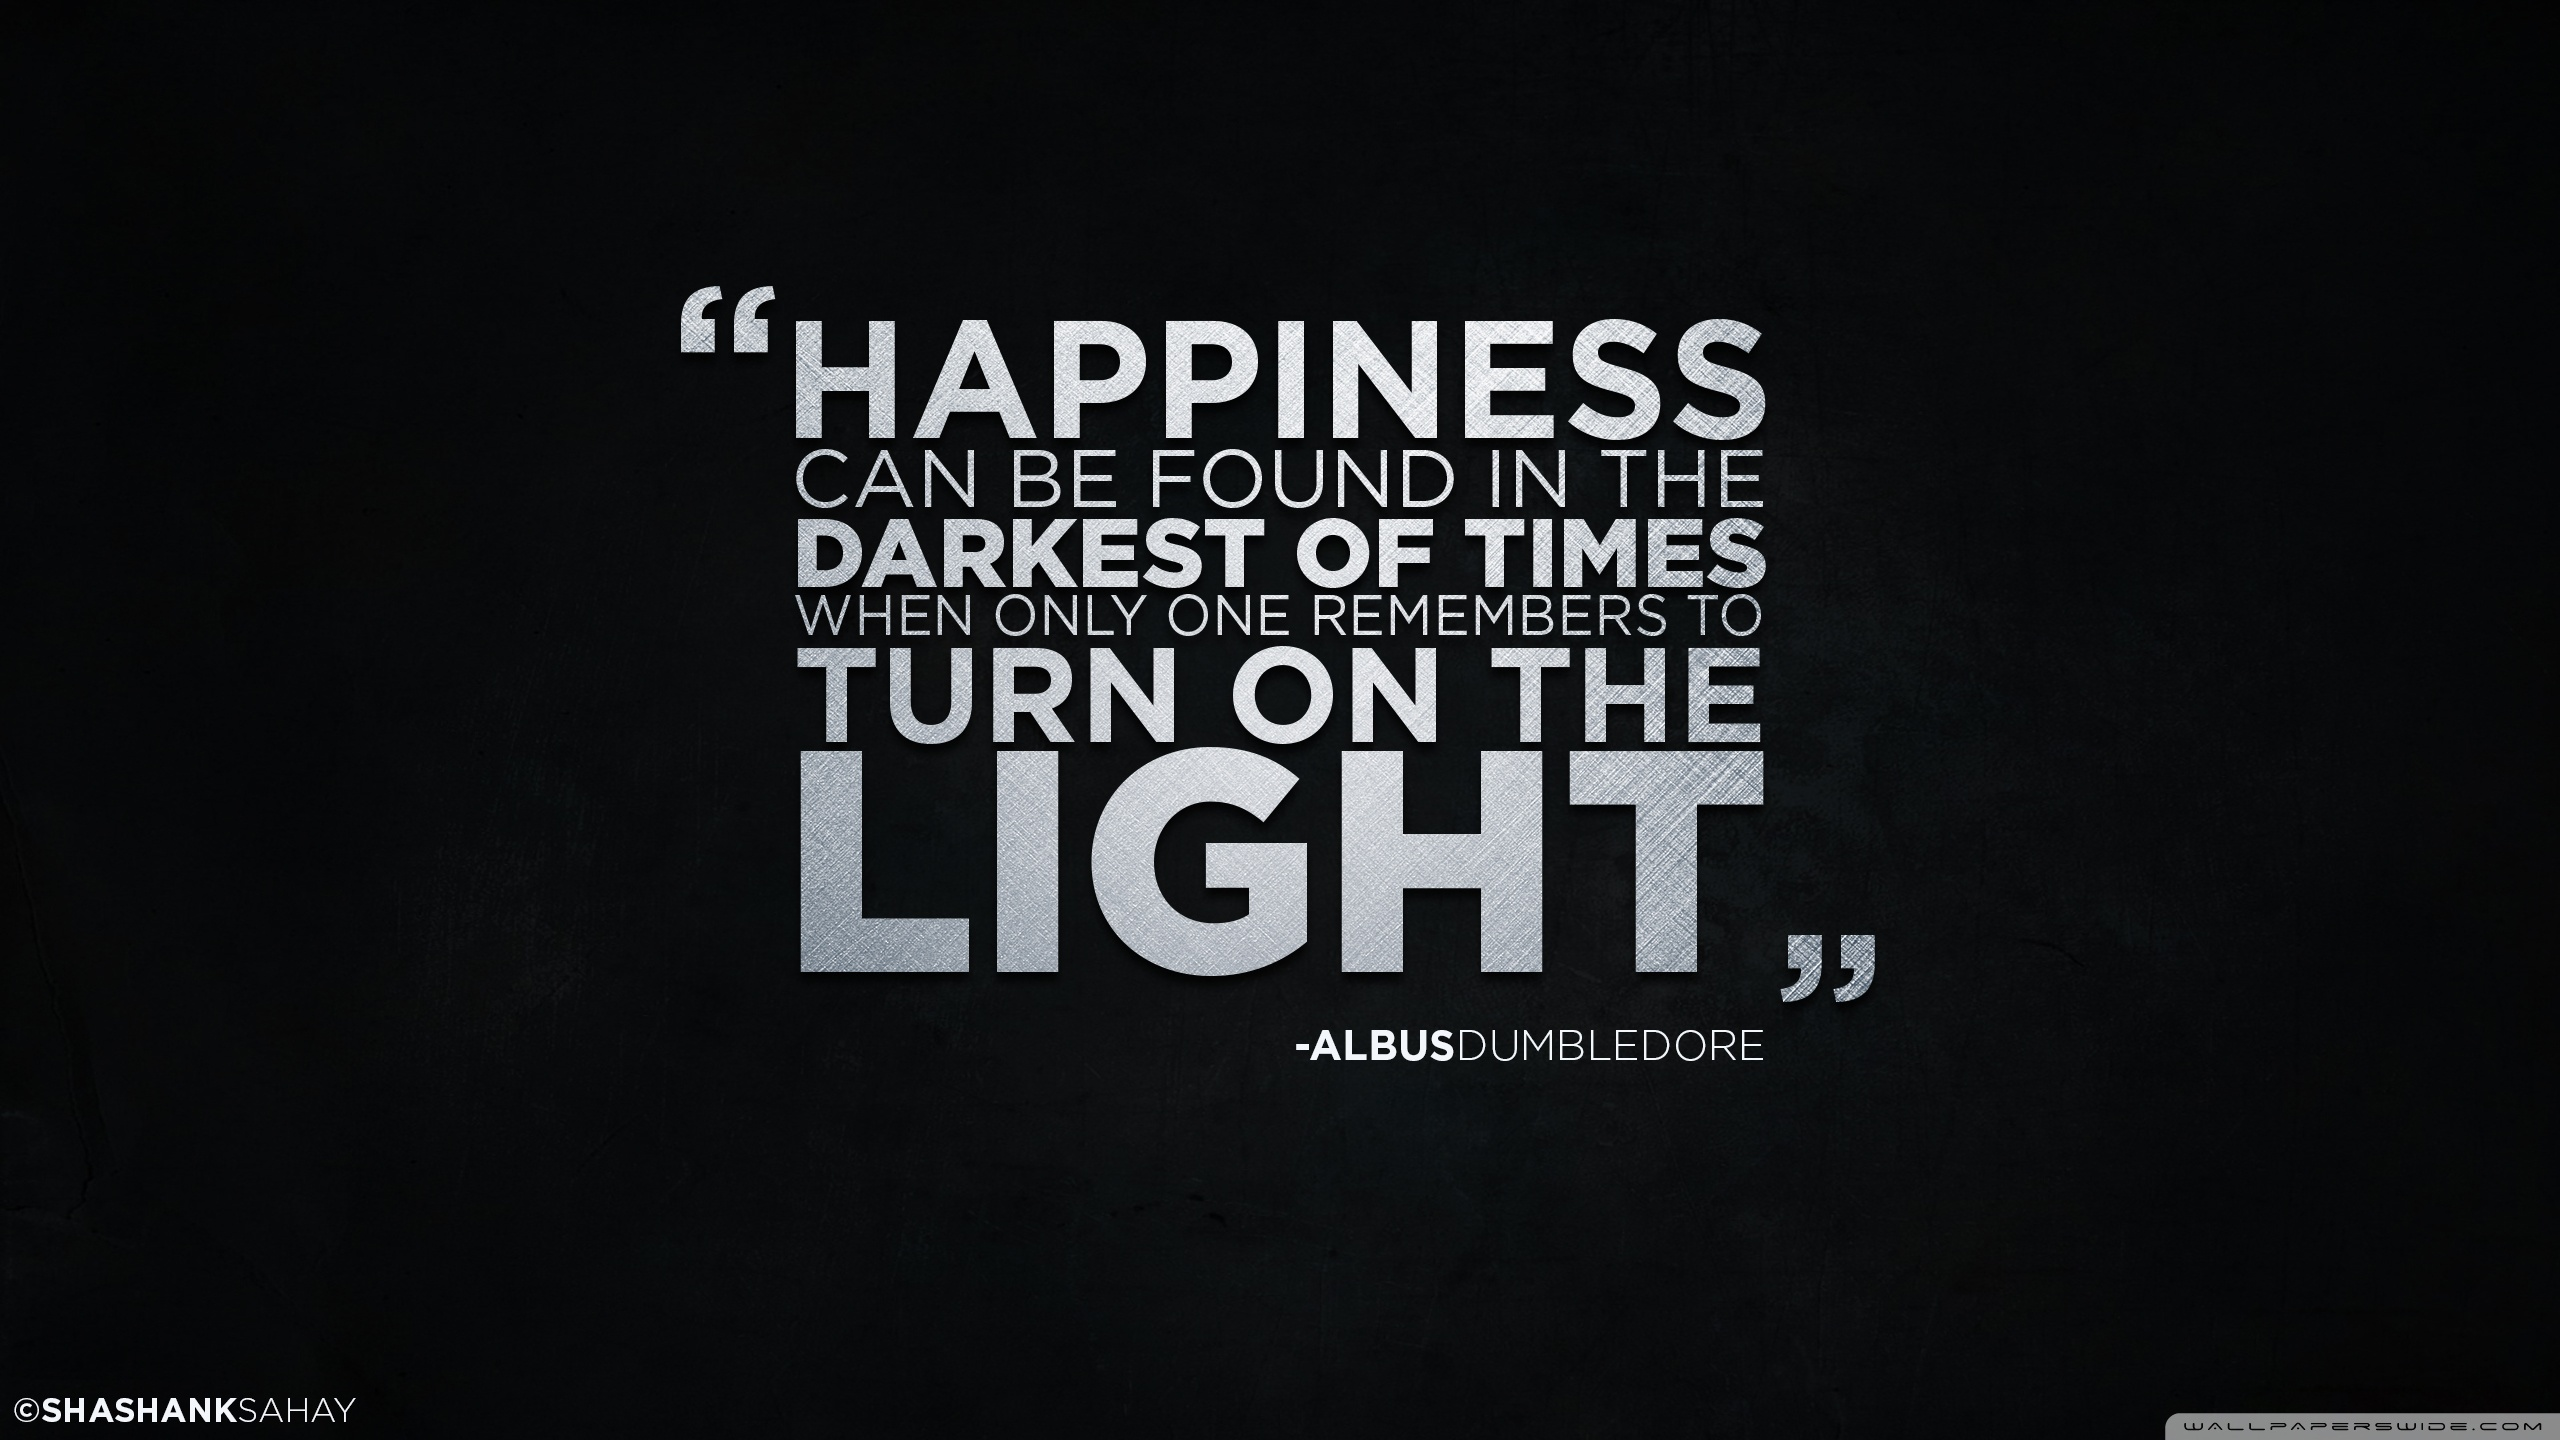 487 Quote HD Wallpapers Background Images 2560x1440